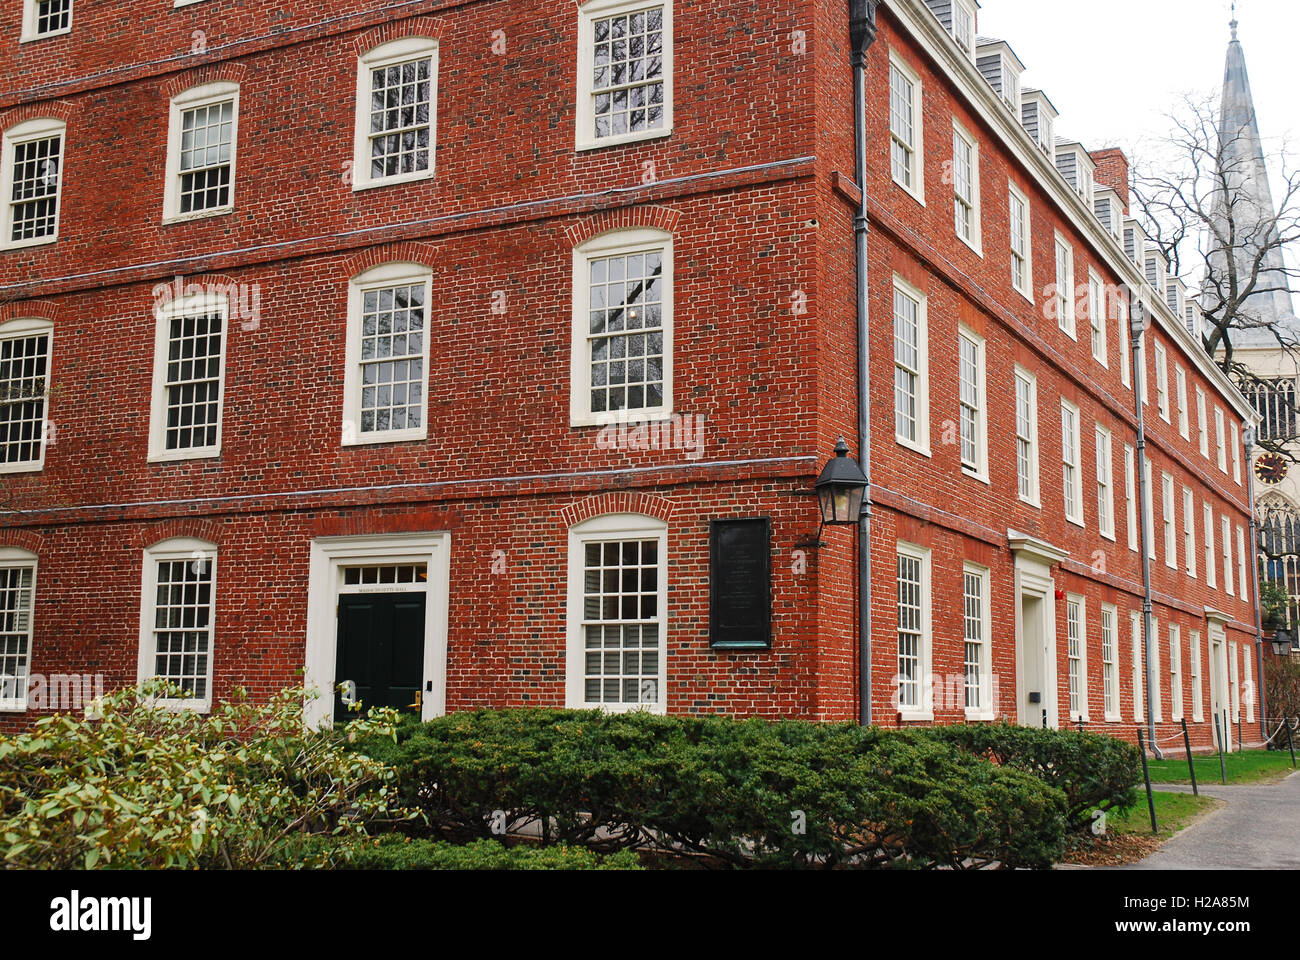 Massachusetts Hall on the cam pus of Harvard University - Stock Image